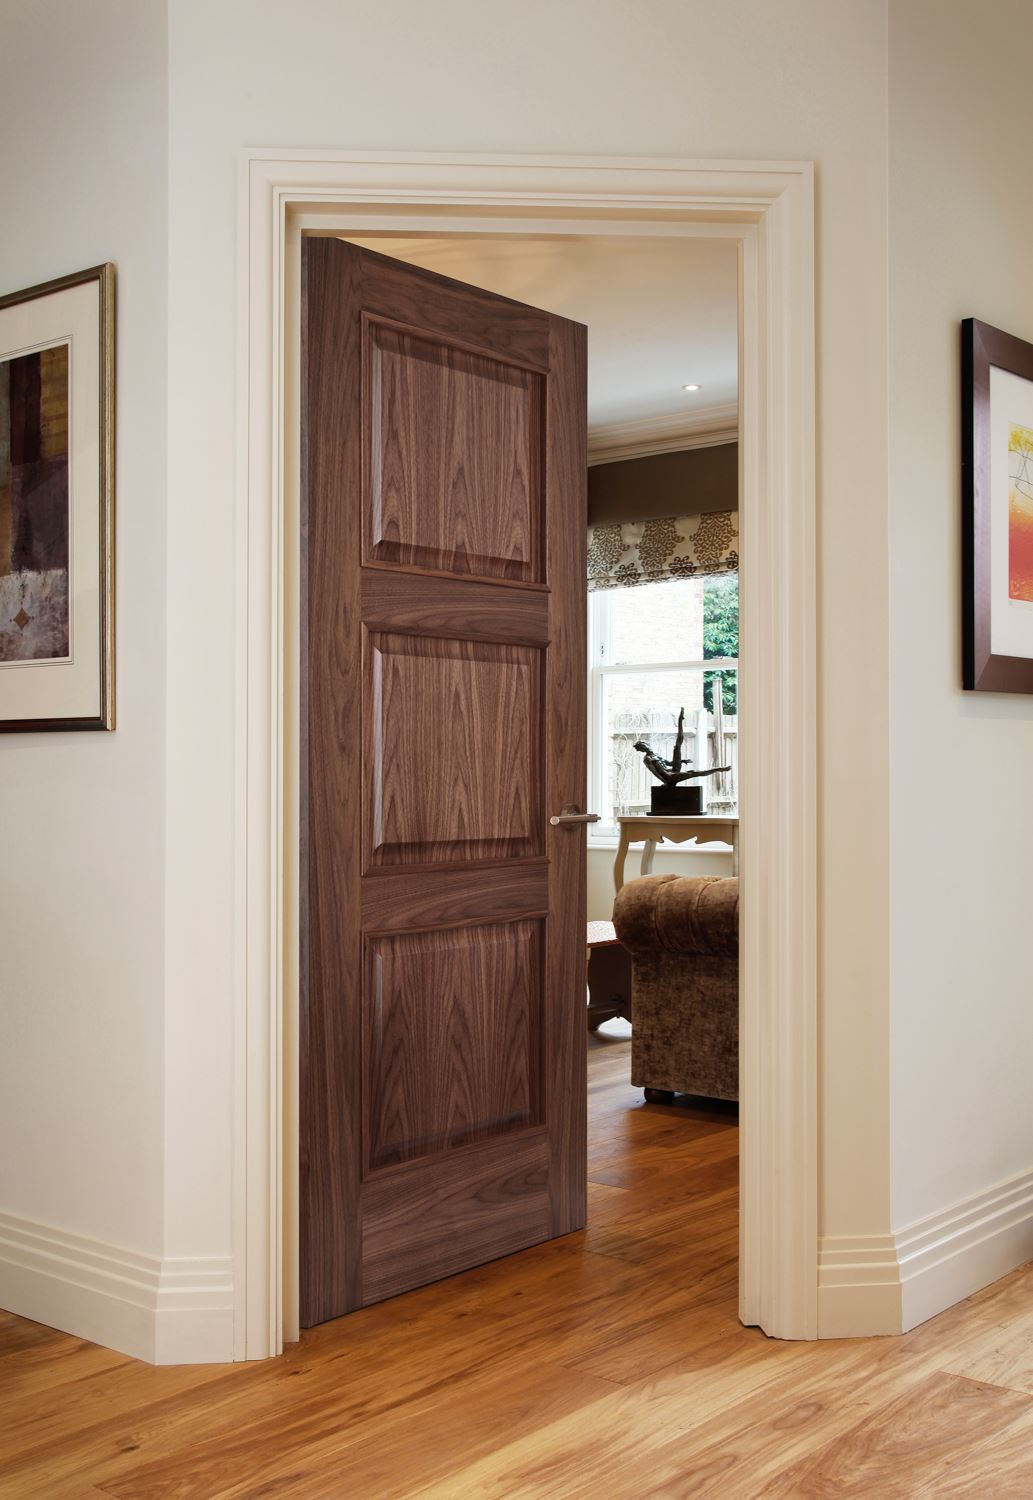 Almeria Walnut Bespoke Door Internal Doors Charles Todd